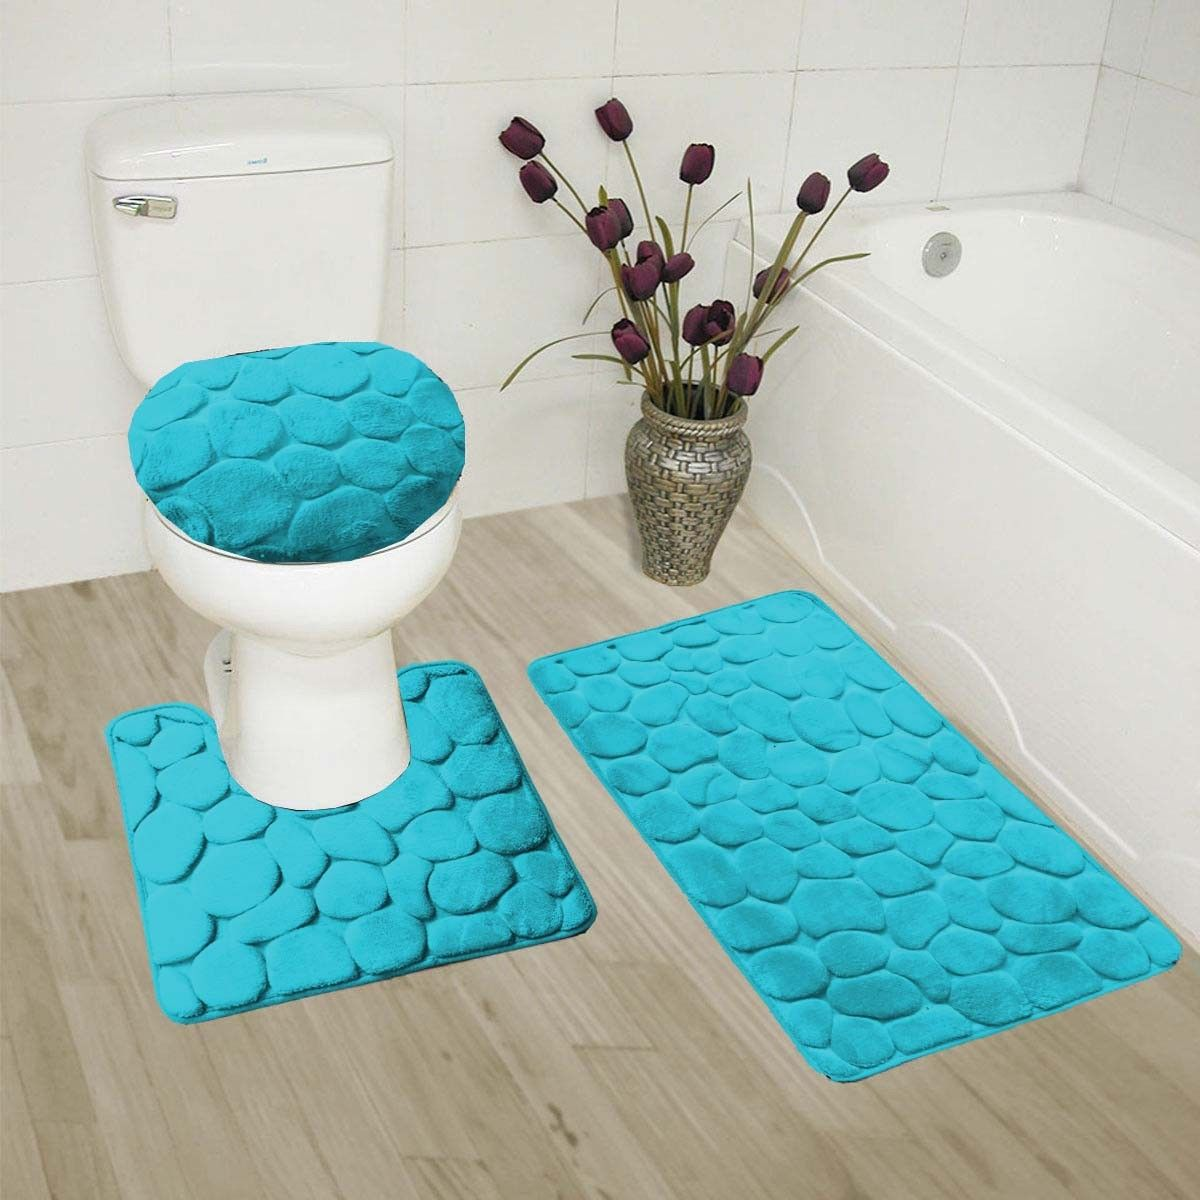 "TURQUOISE 3-Piece Rock Memory Foam Bathroom Mat Set, Flannel Embossed Rug 19""x 30"", Contour Mat 19""x19"", and Toilet Lid Cover 19""x19"" with Non-Skid Rubber Back"